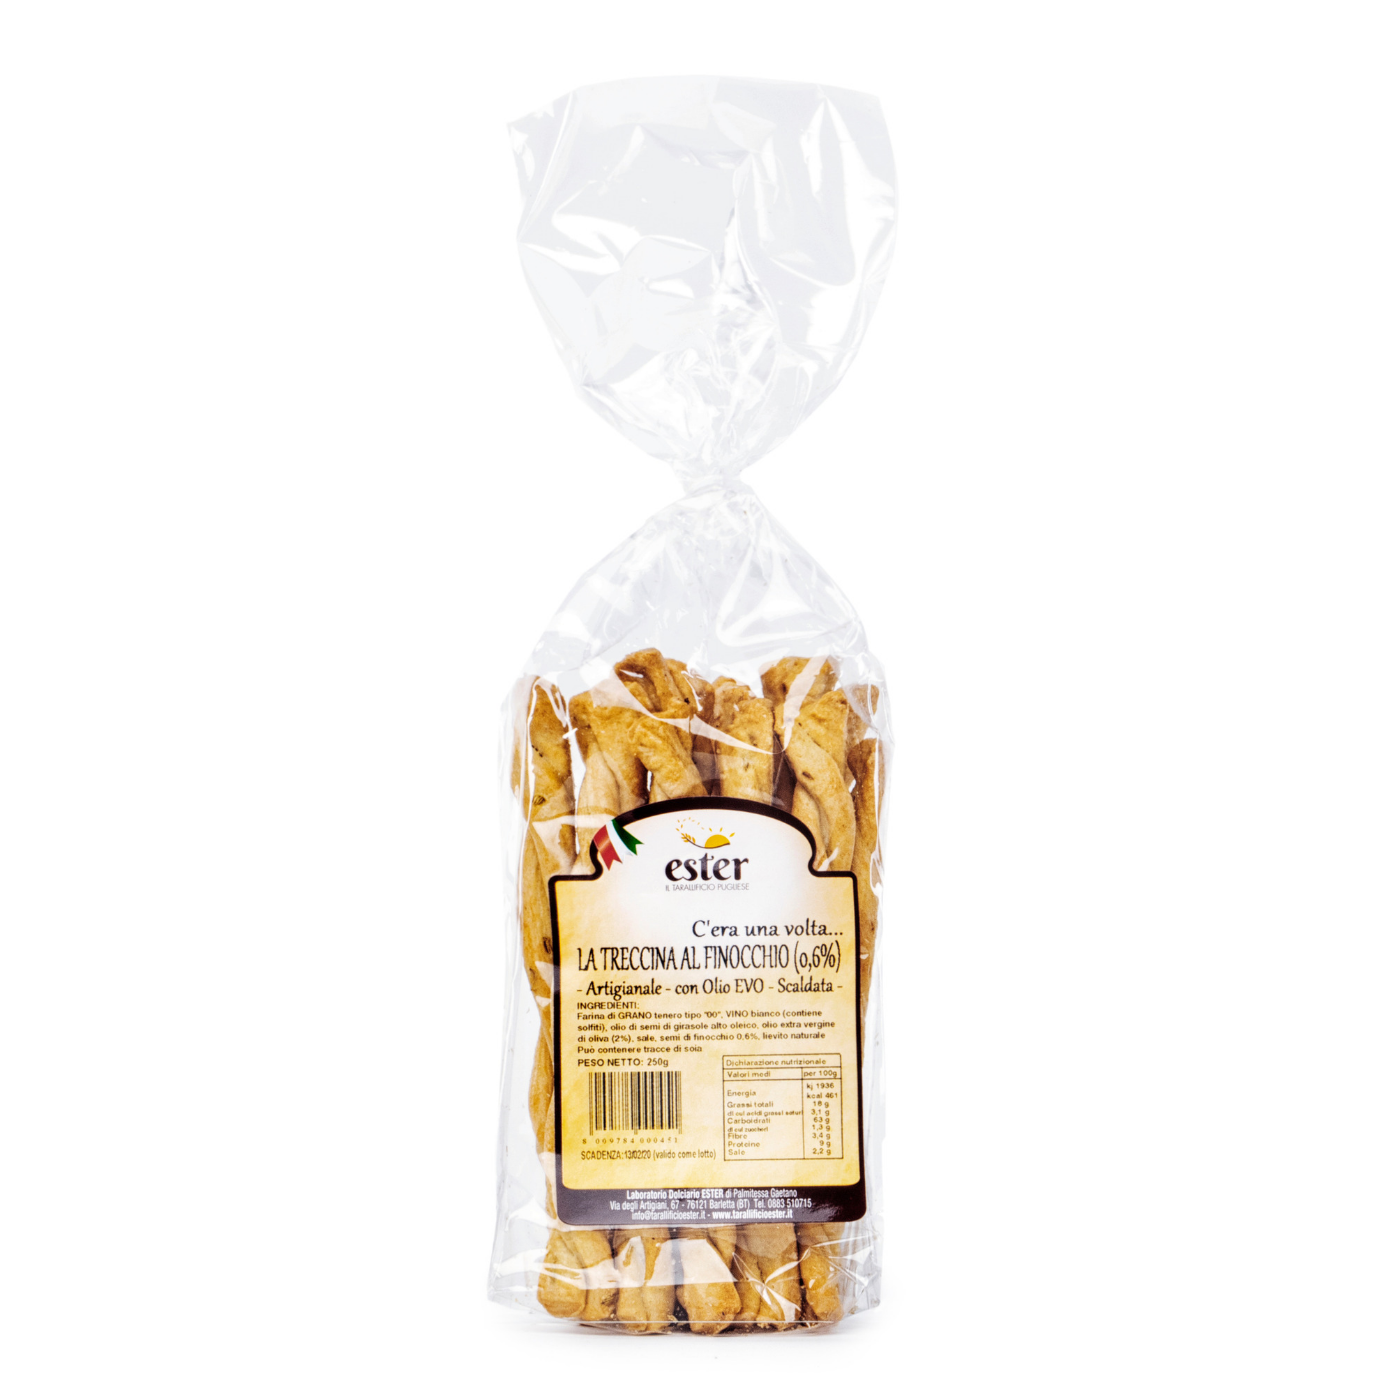 Ester Plain Treccine Baked Product Italy wheat,salted snack,biscuit